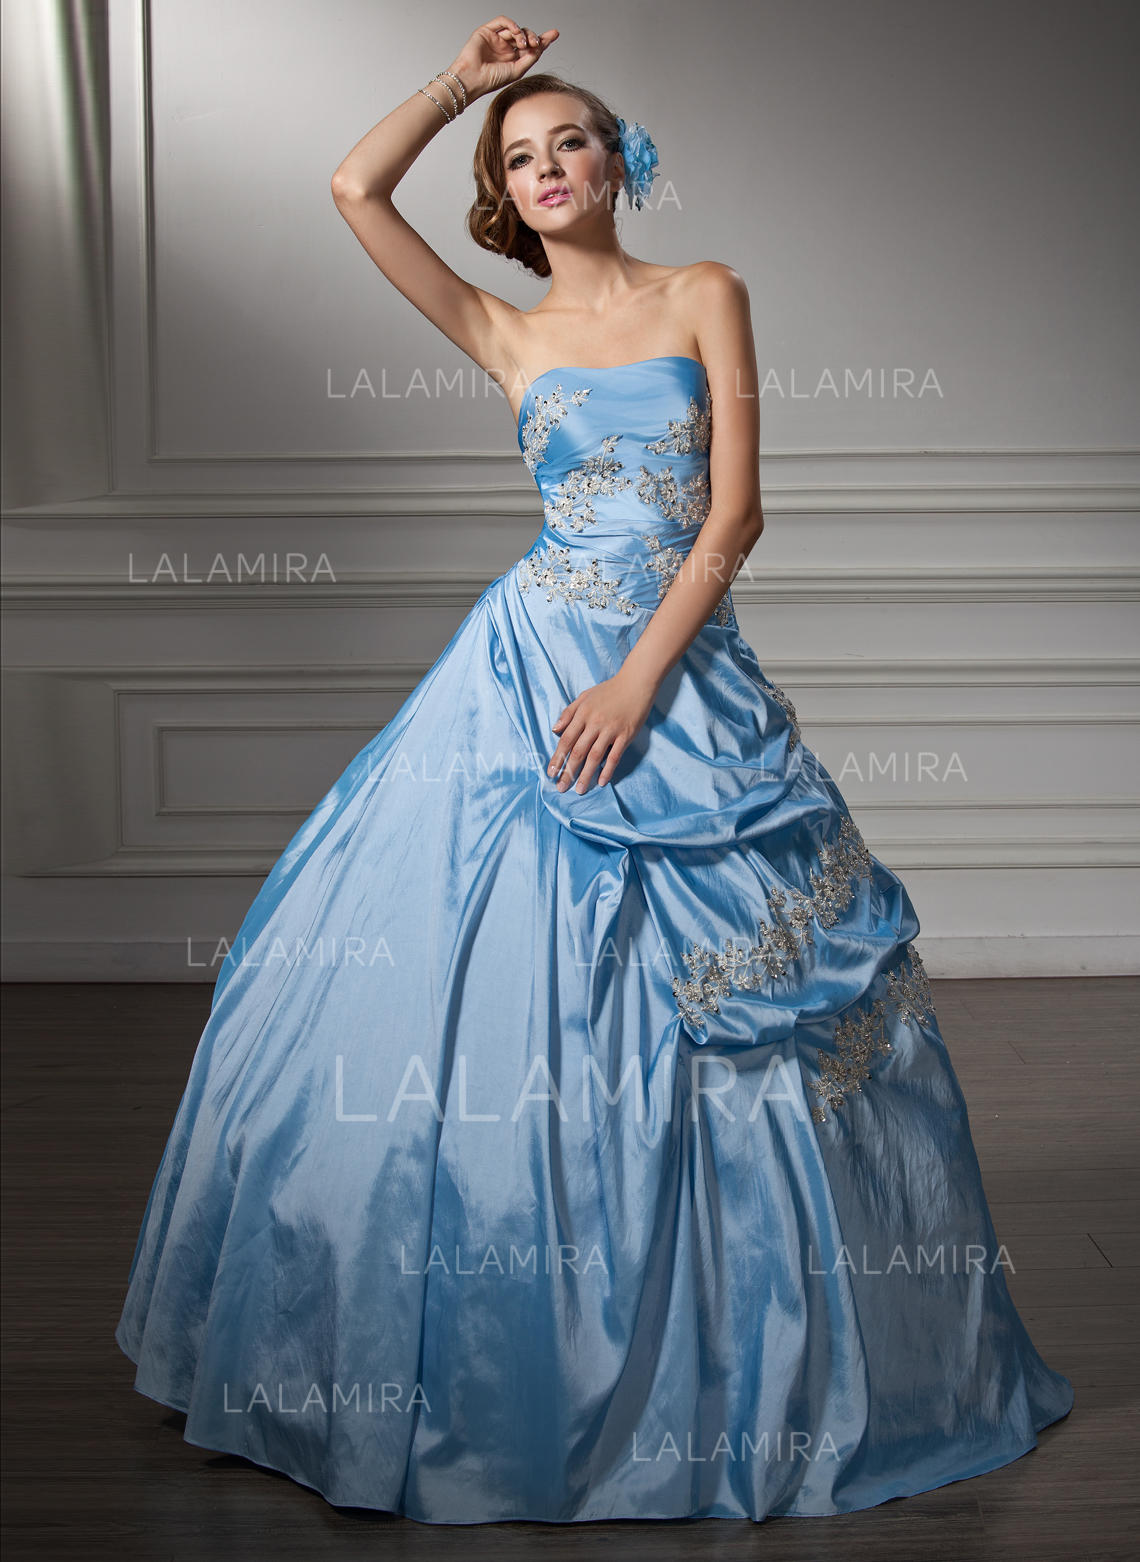 435922fefea Ball-Gown Taffeta Prom Dresses Sexy Floor-Length Sweetheart Sleeveless  (018135443). Loading zoom